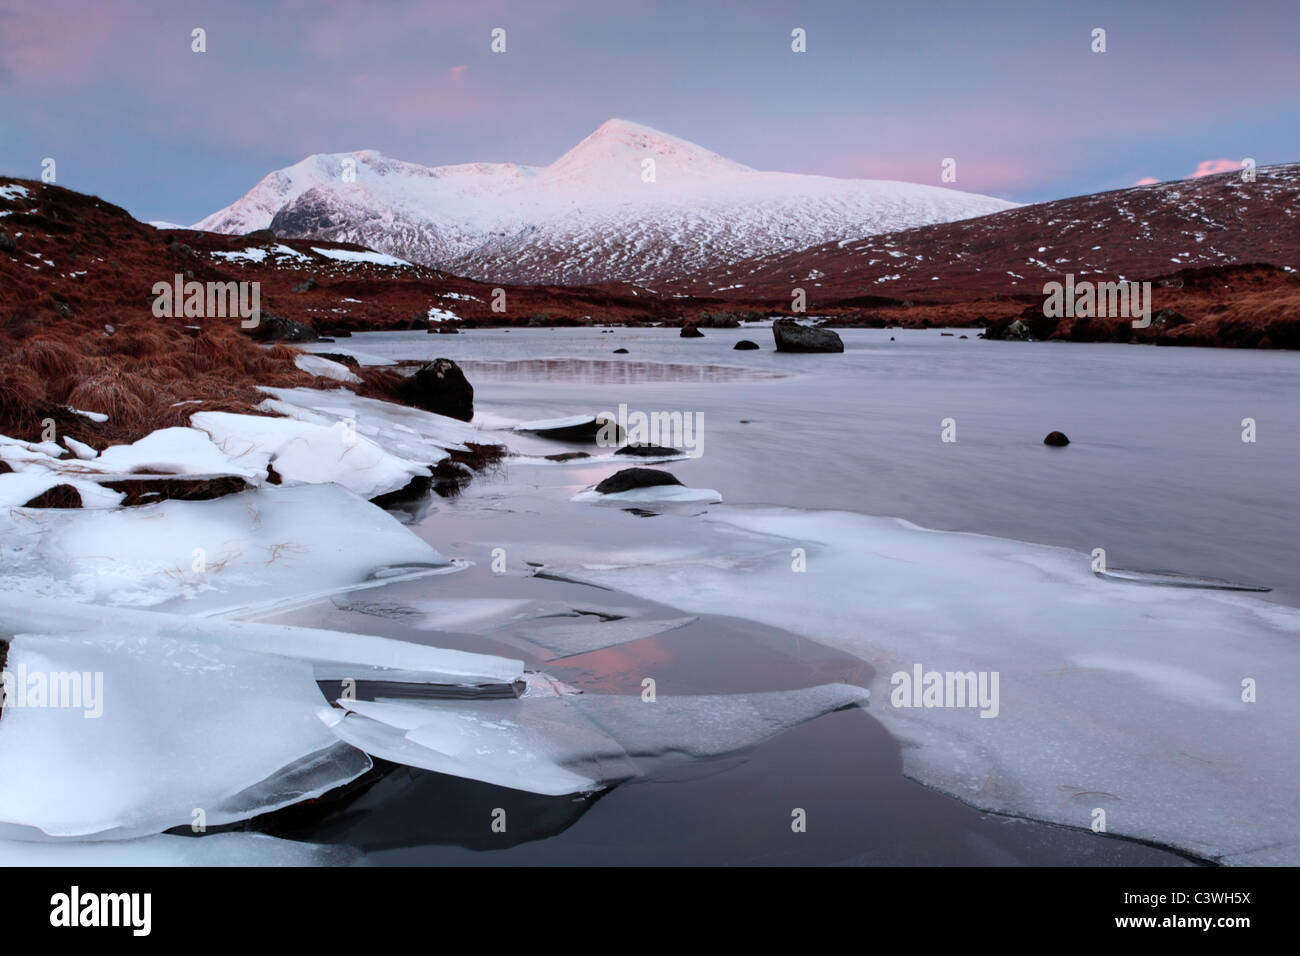 Snow-clad Meall a Bhuiridh and the icy waters of Lochan na h-Achlaise in Rannoch Moor, Scotland - Stock Image